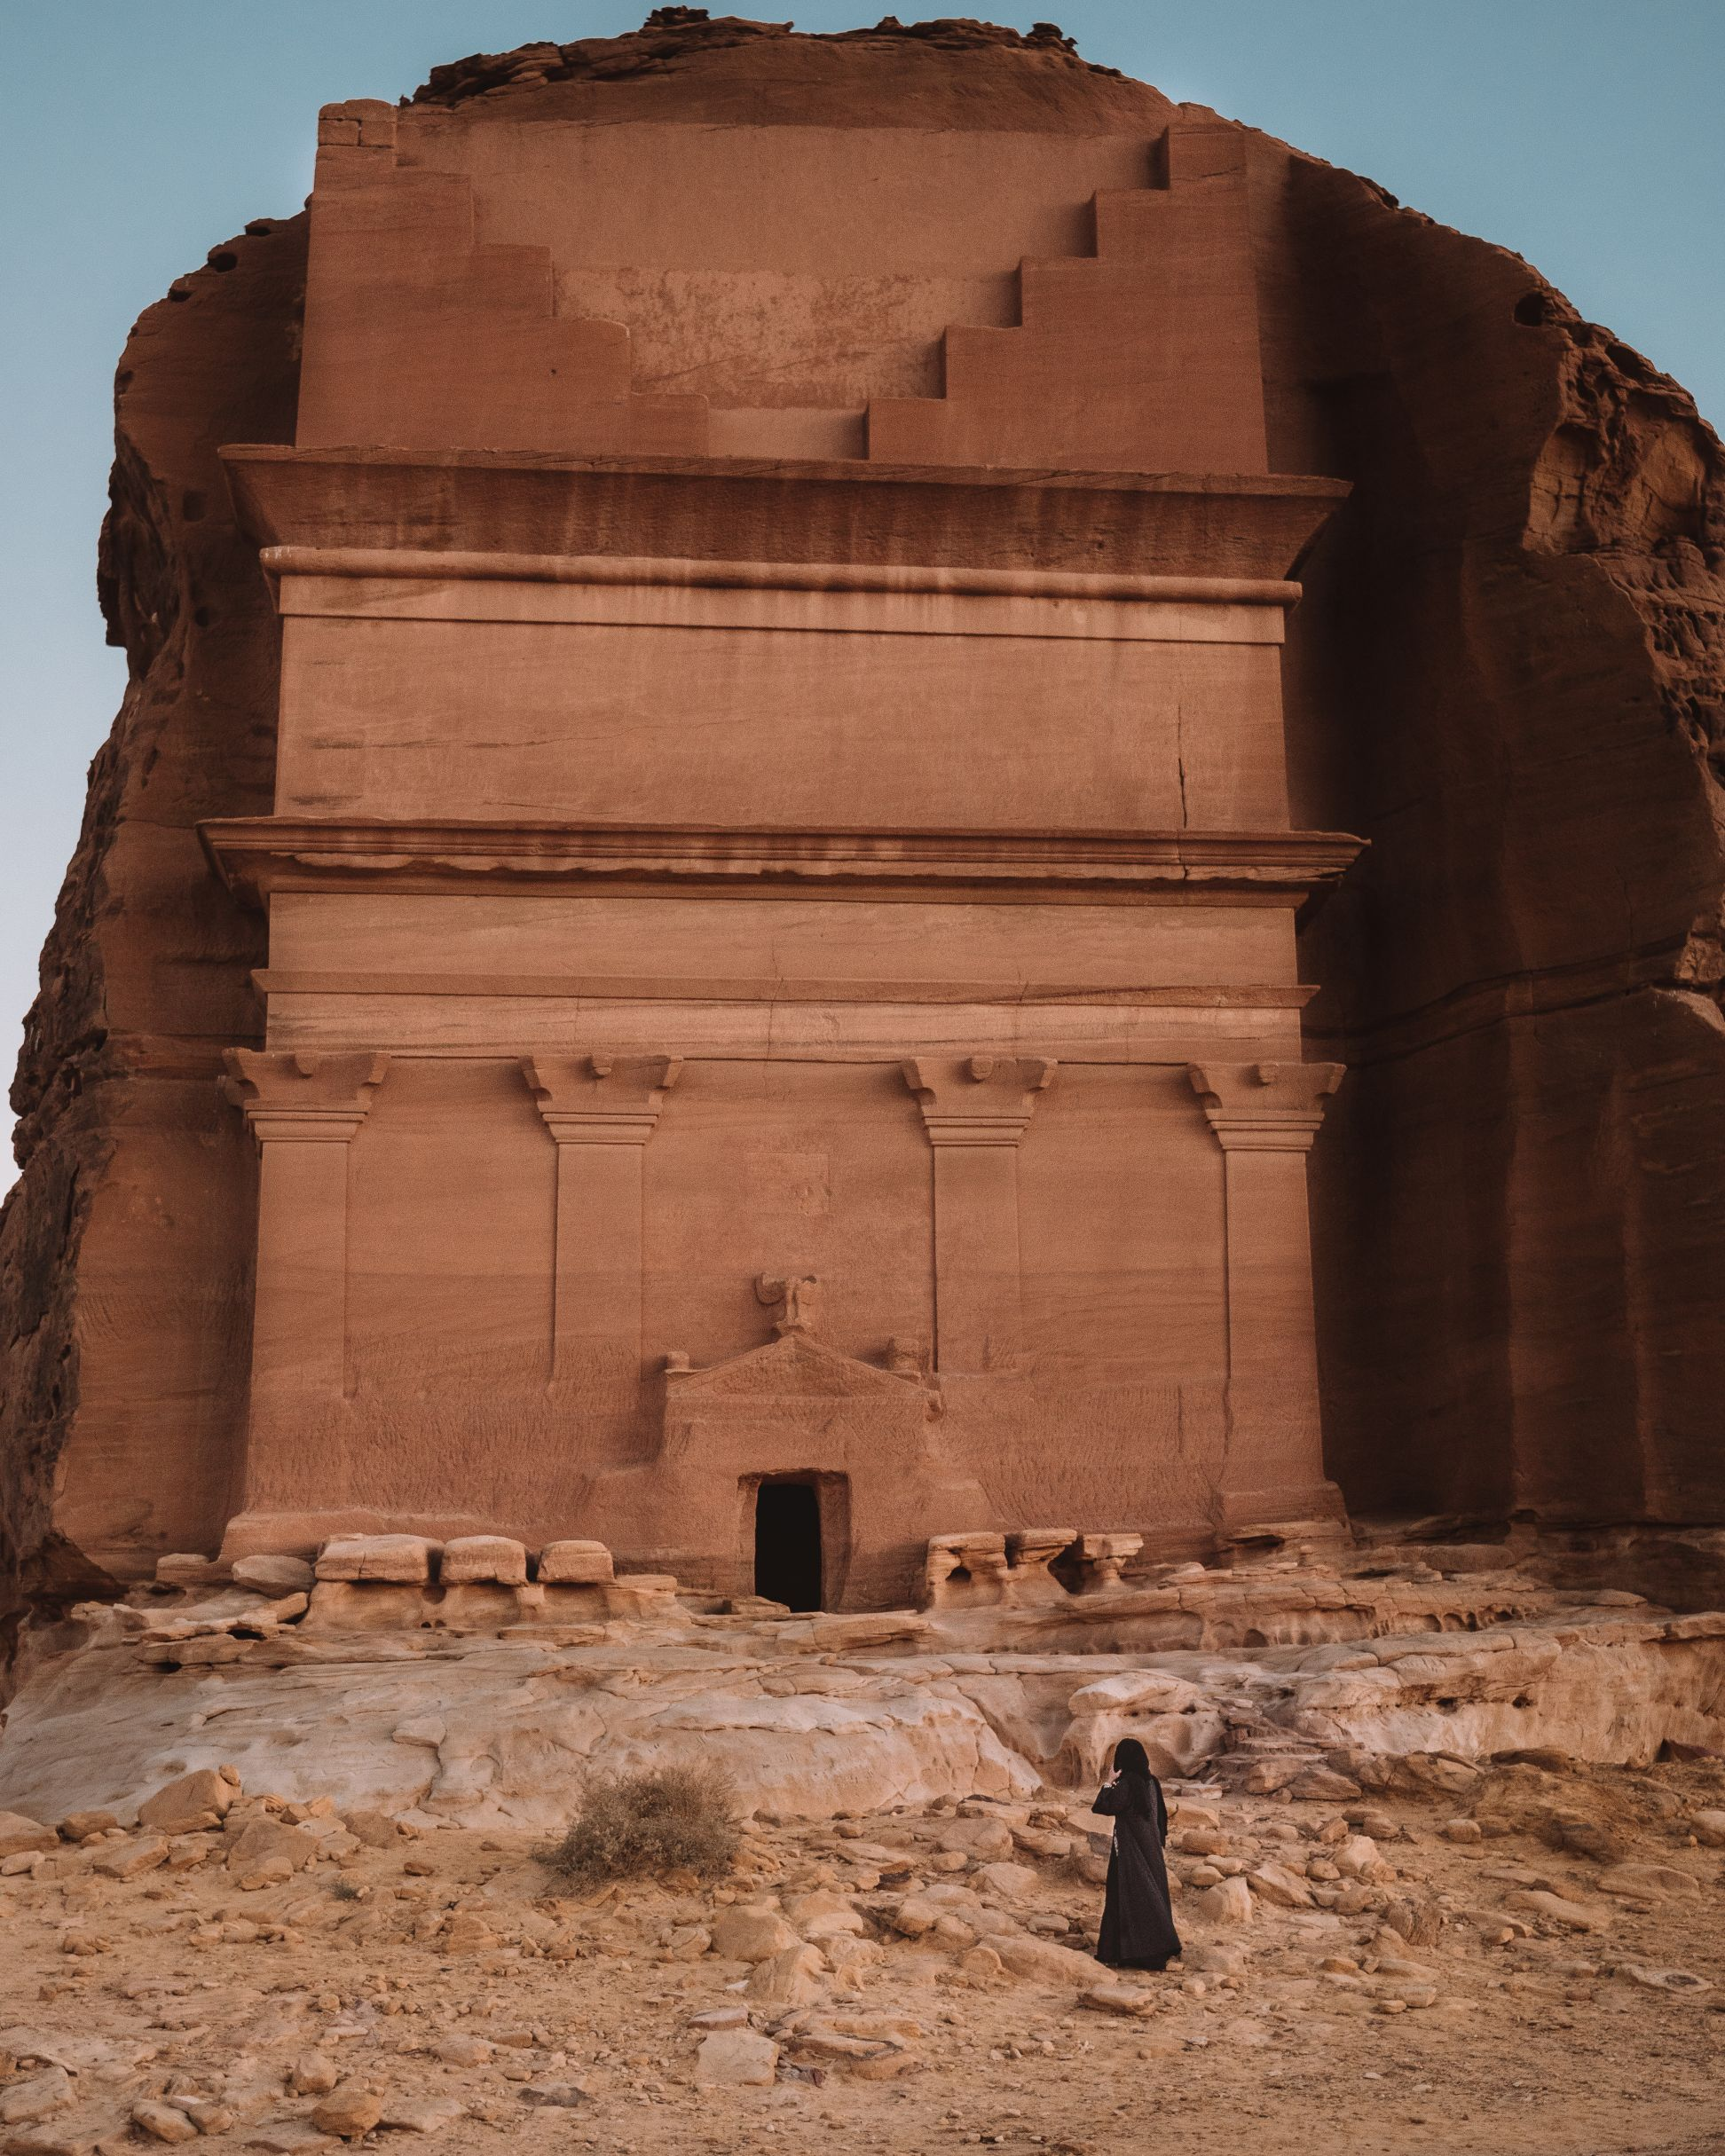 Madain Saleh historic site Al-Ula Saudi Arabia